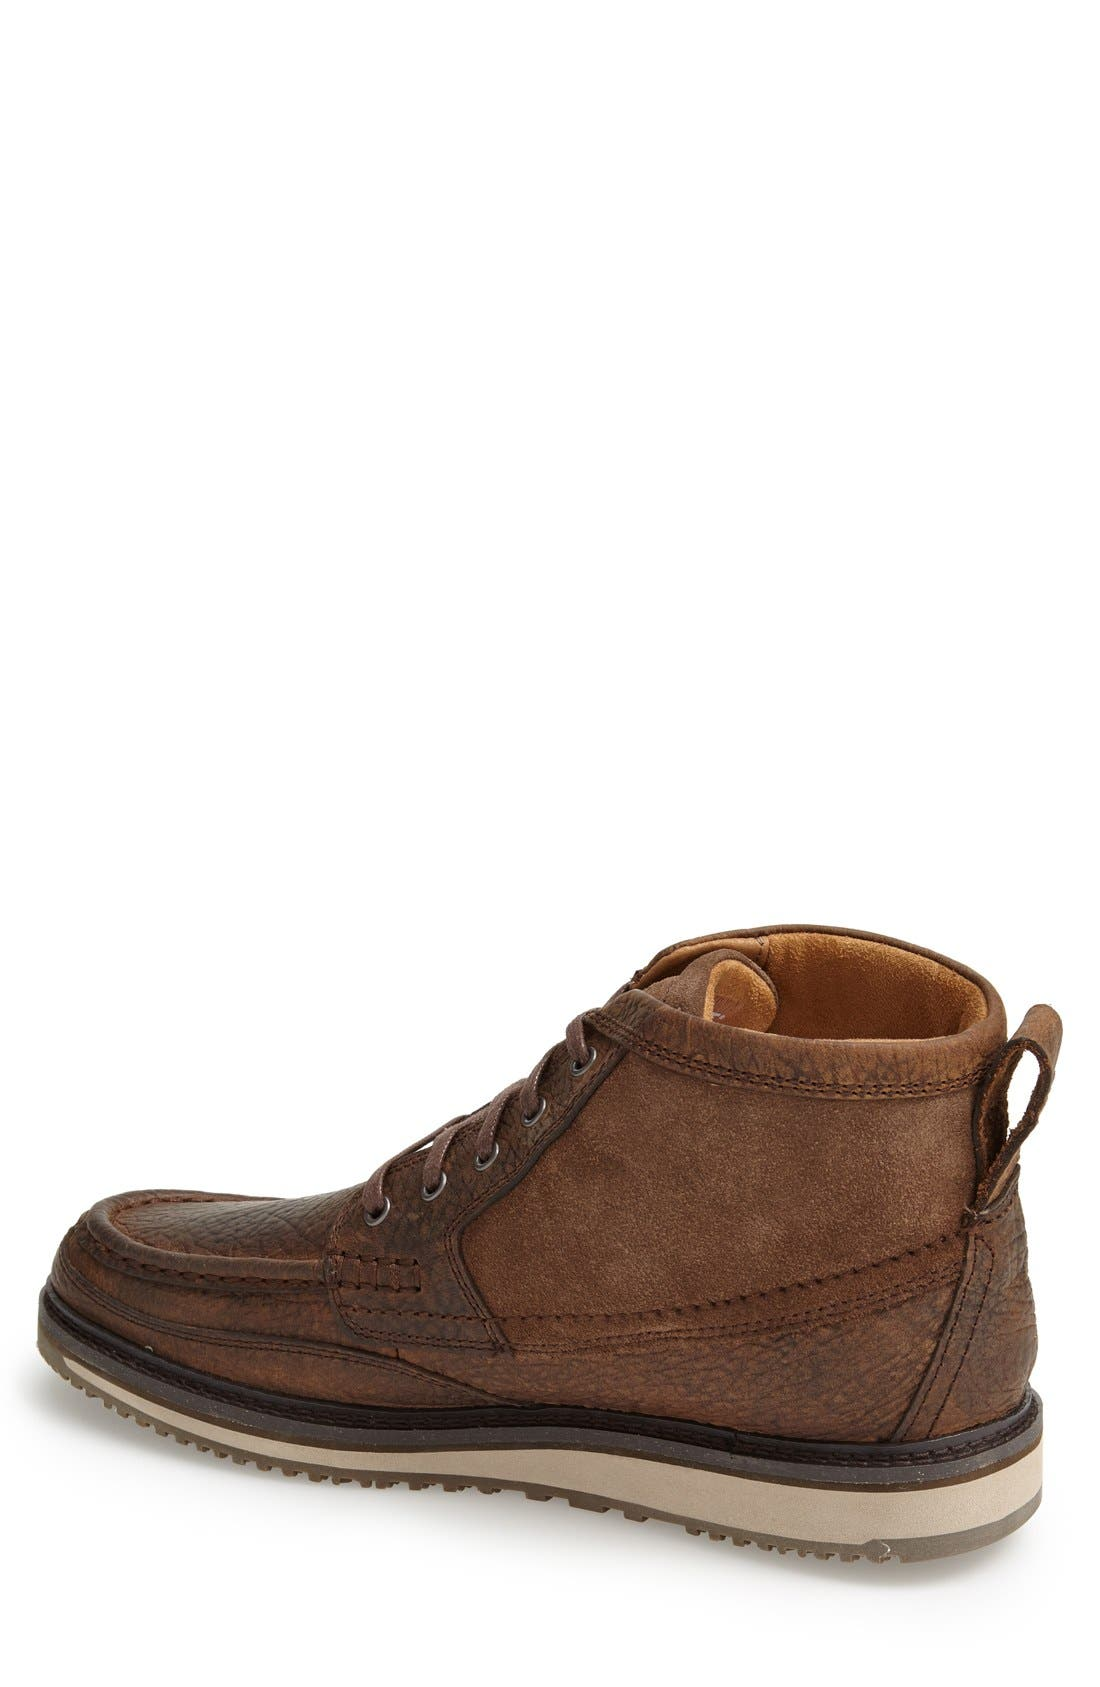 'Lookout' Moc Toe Boot,                             Alternate thumbnail 2, color,                             Brown